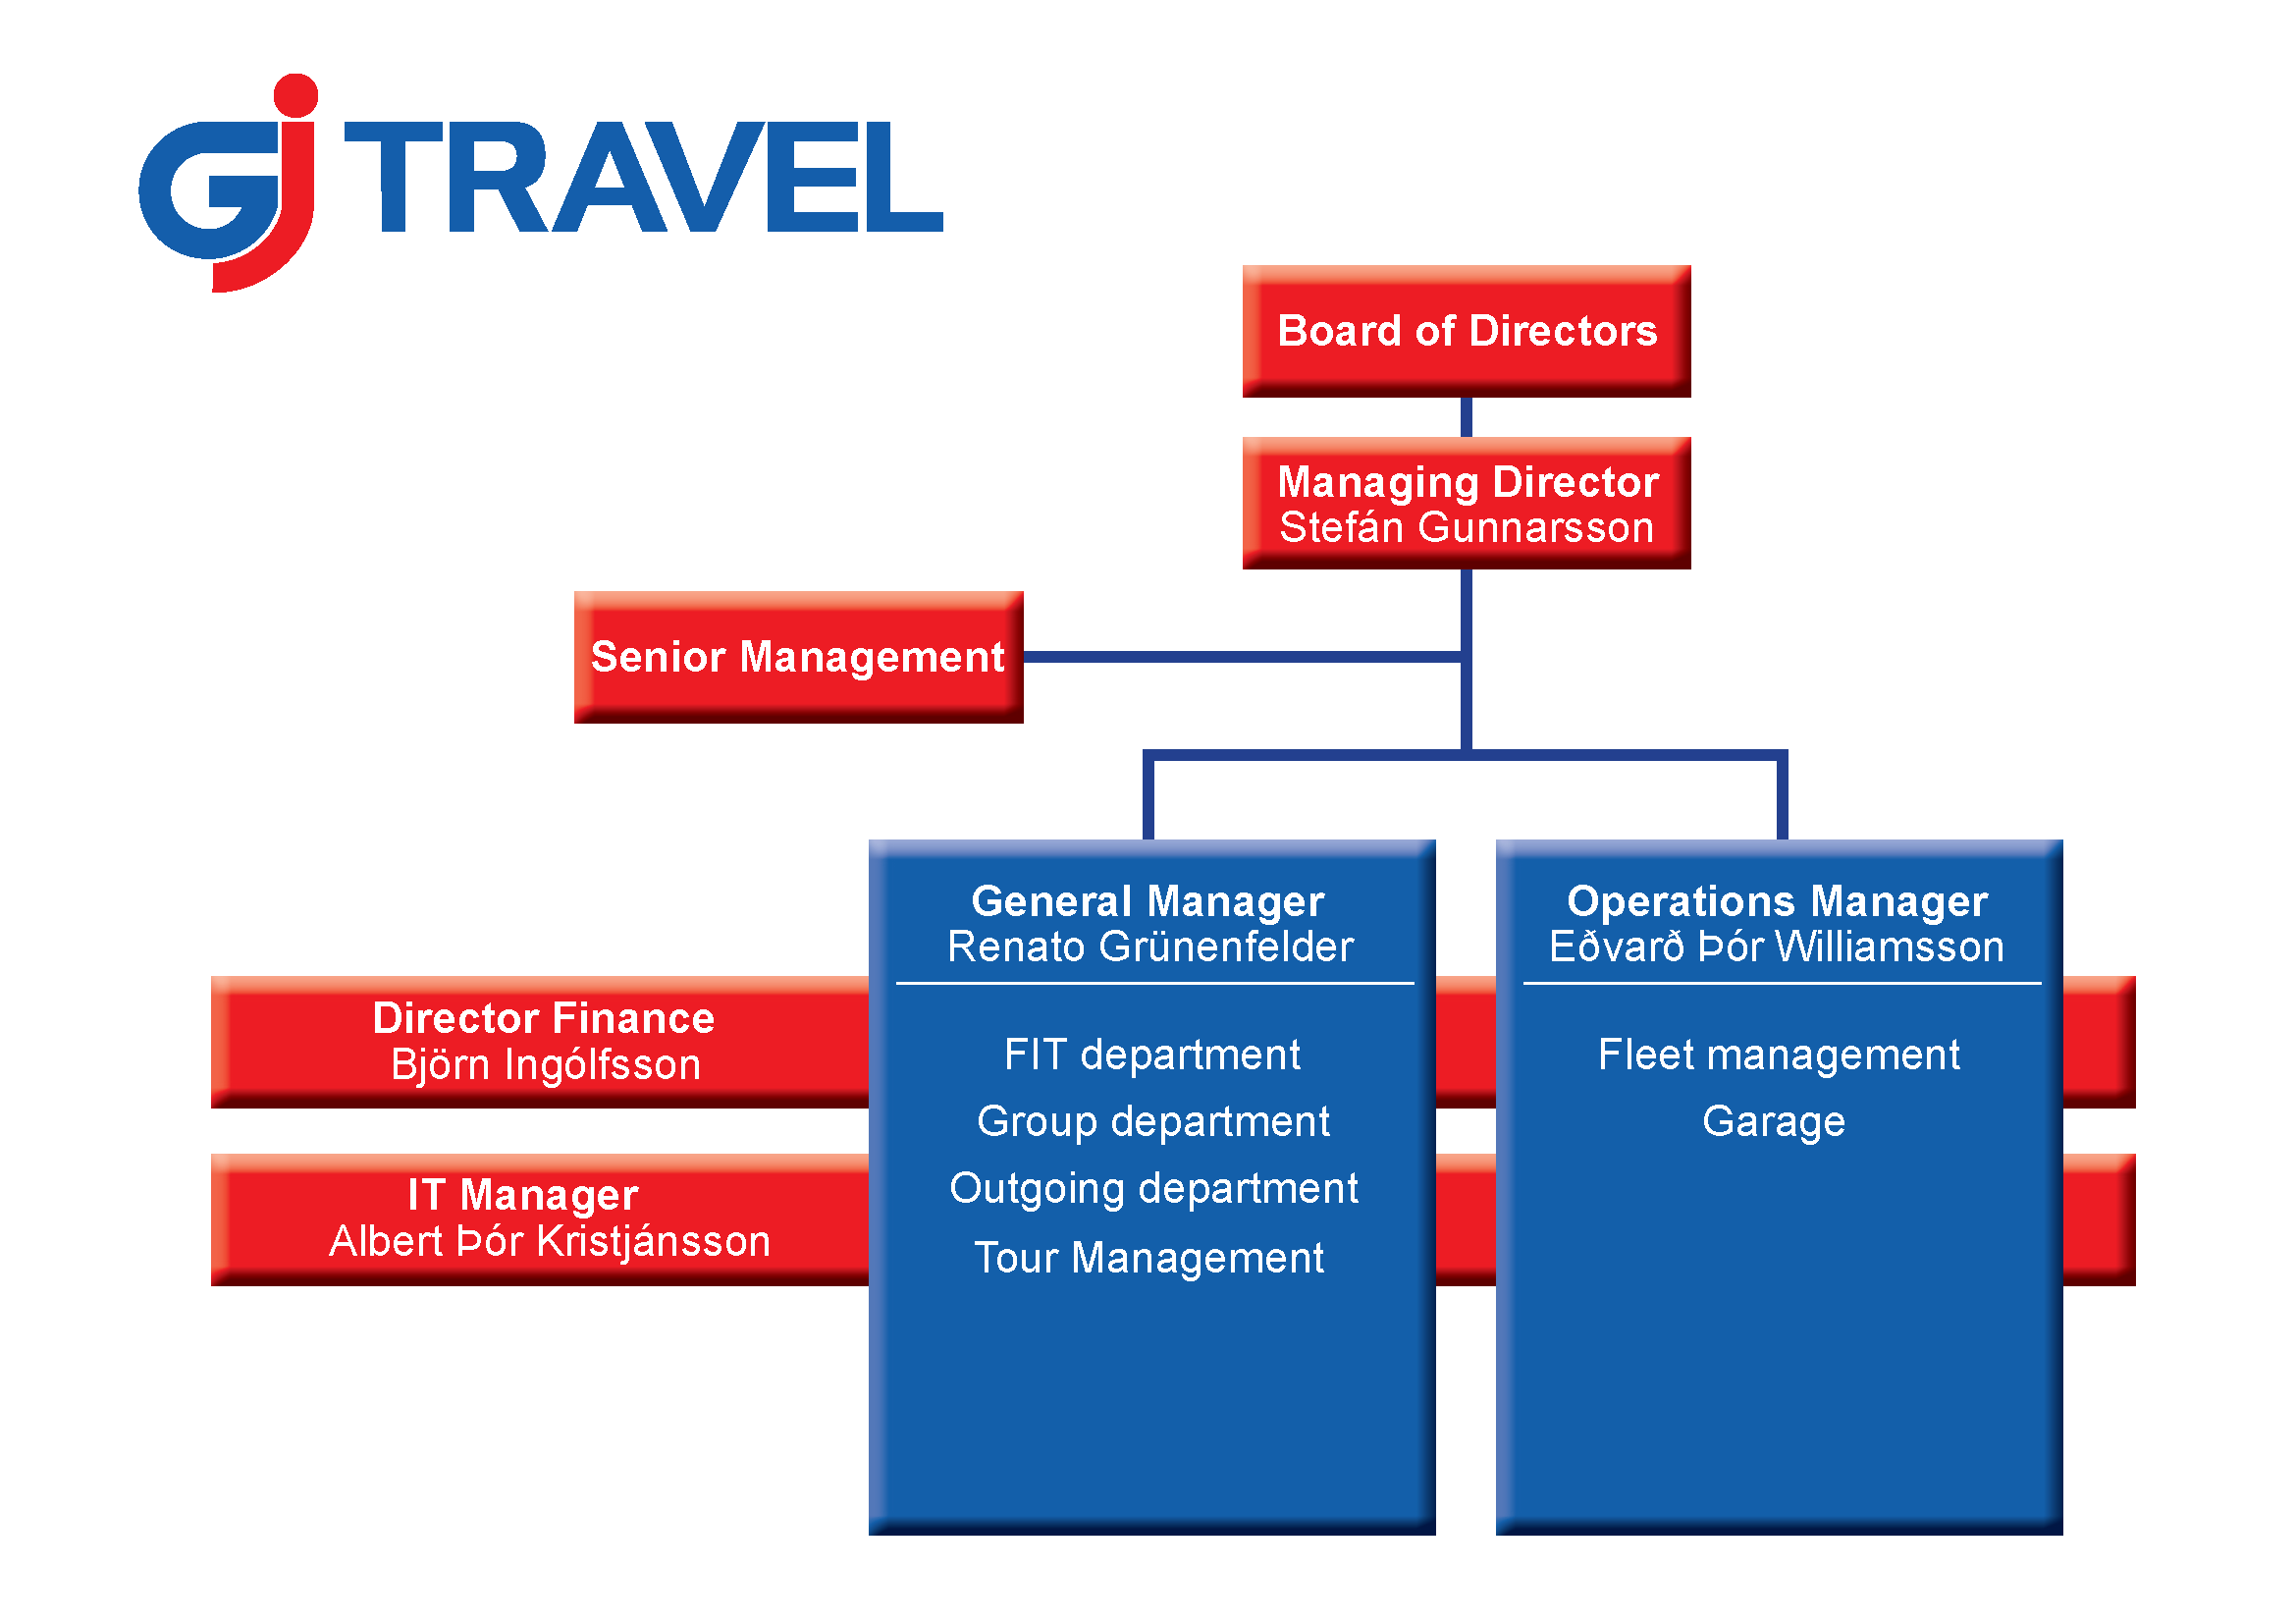 GJ Travel Organization chart